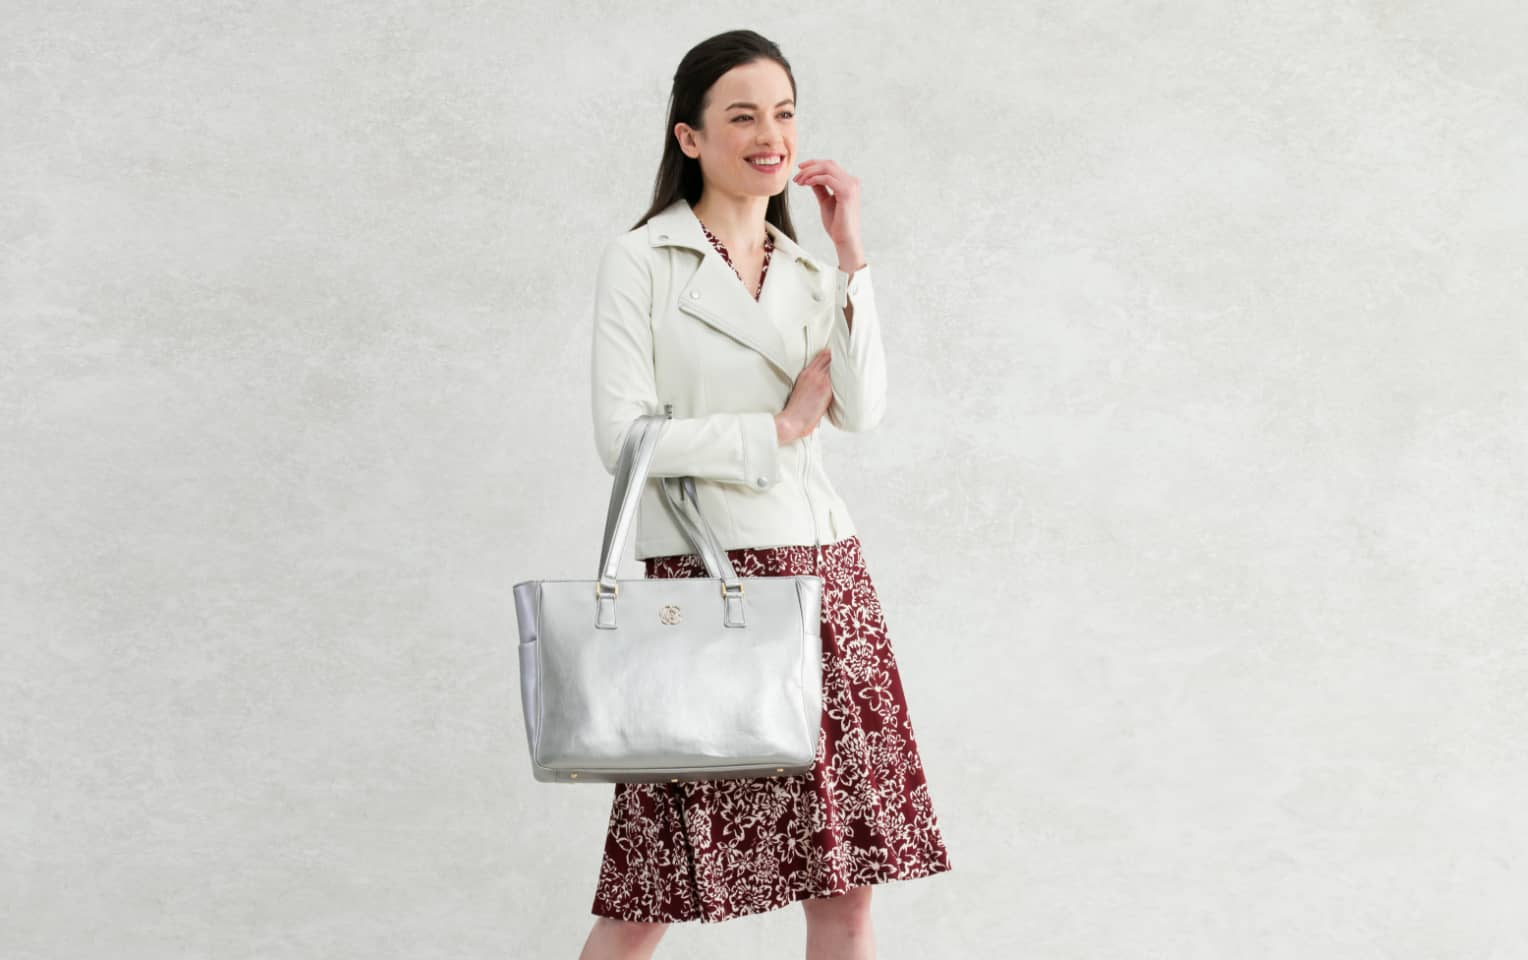 Coordinate_2_Bordeaux_Dress_Ivory_Rider.jpg